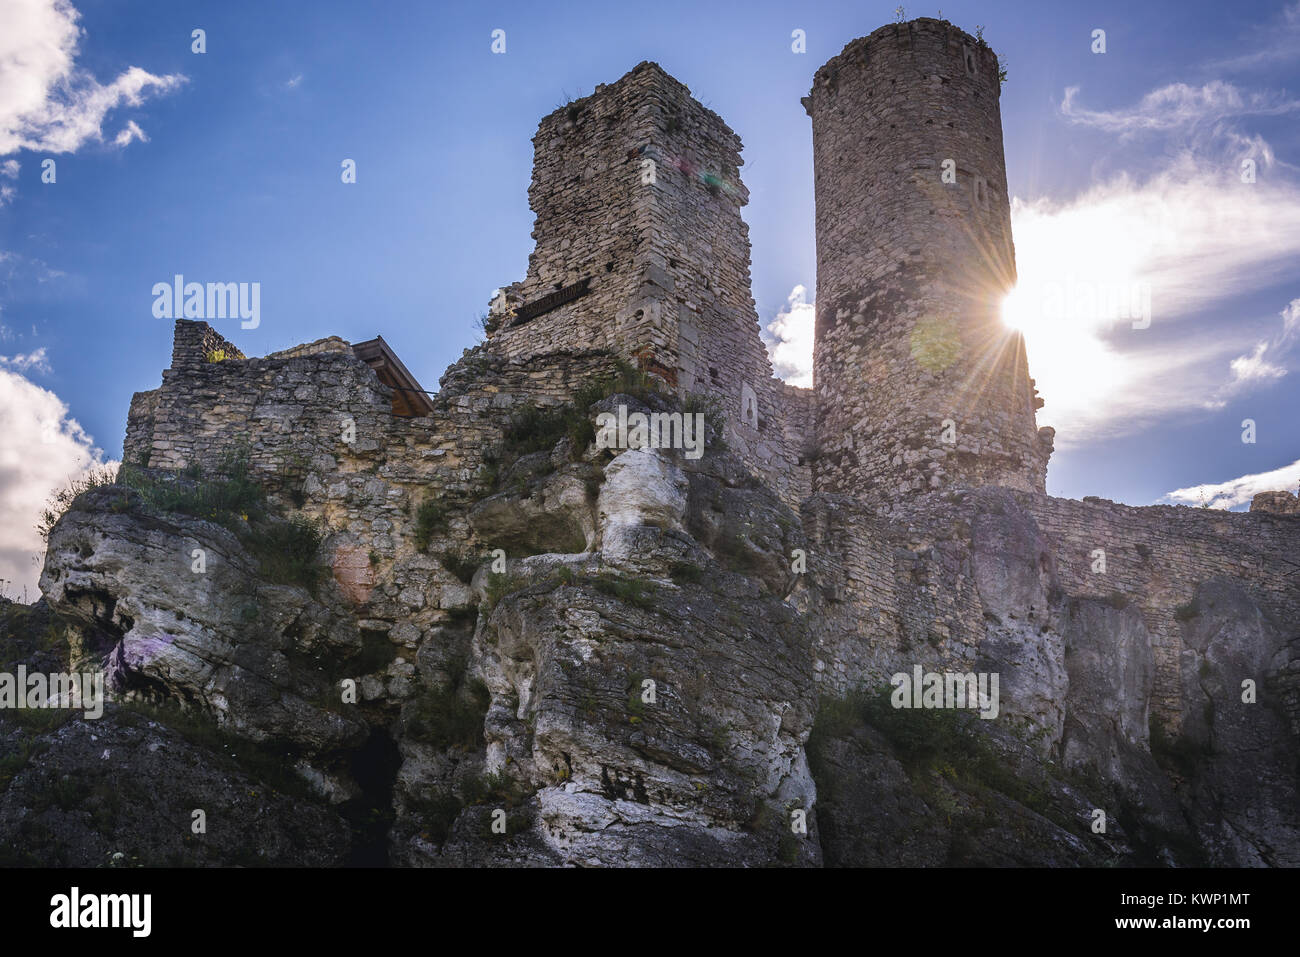 Ruins of Ogrodzieniec Castle in Podzamcze village, part of the Eagles Nests castle system in Silesian Voivodeship Stock Photo